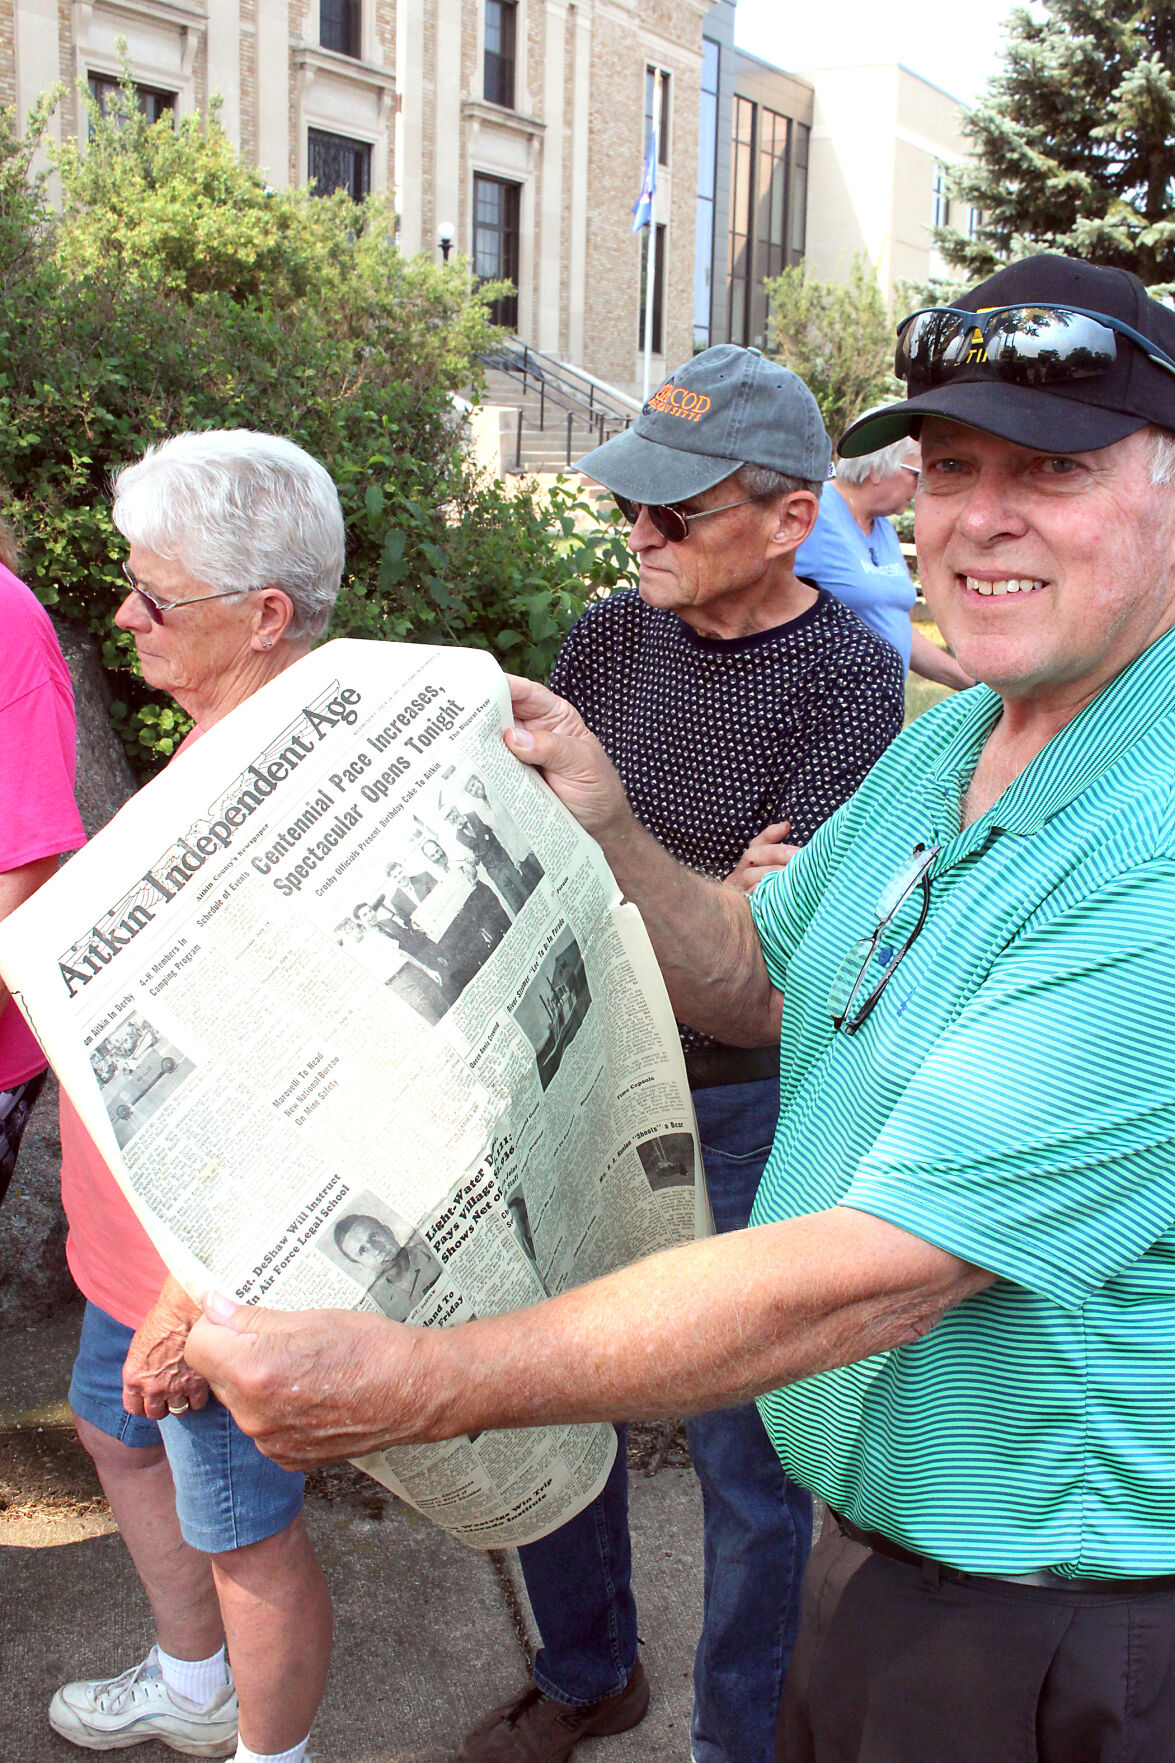 Rich Fannemel holds up the Age